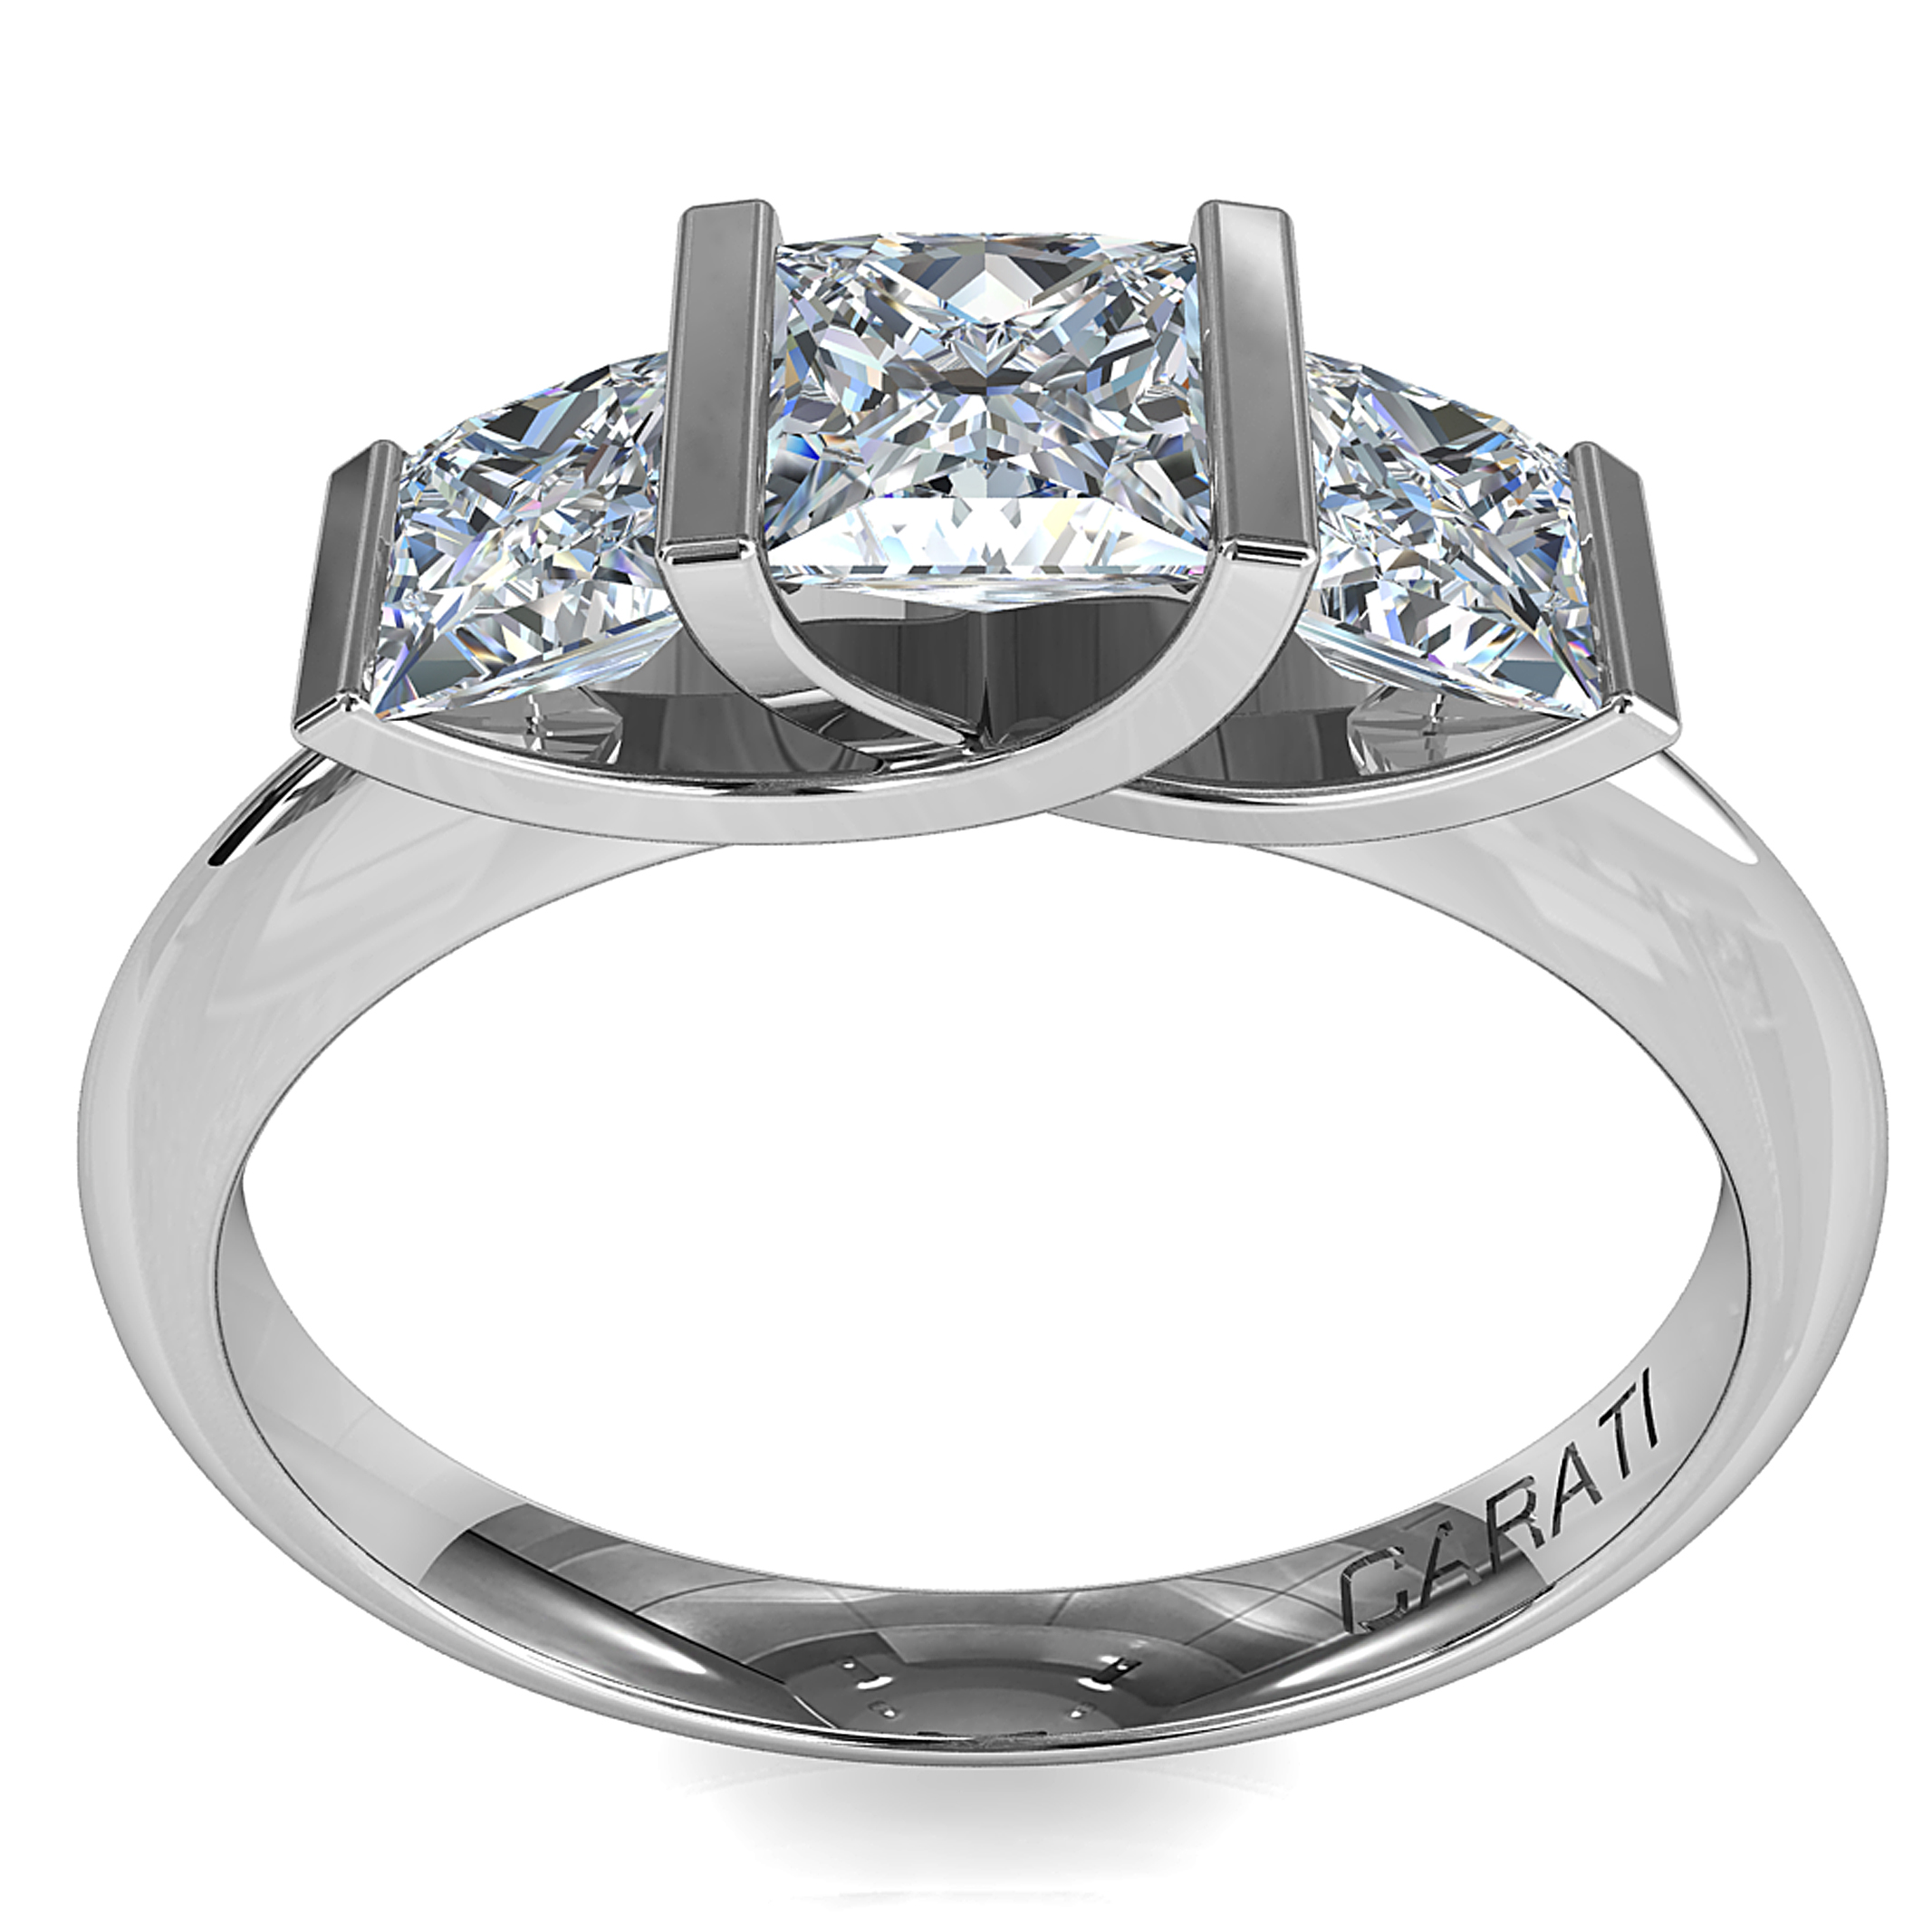 Princess Cut Trilogy Diamond Engagement Ring, Claw Set Stones and a Twist Undersetting.